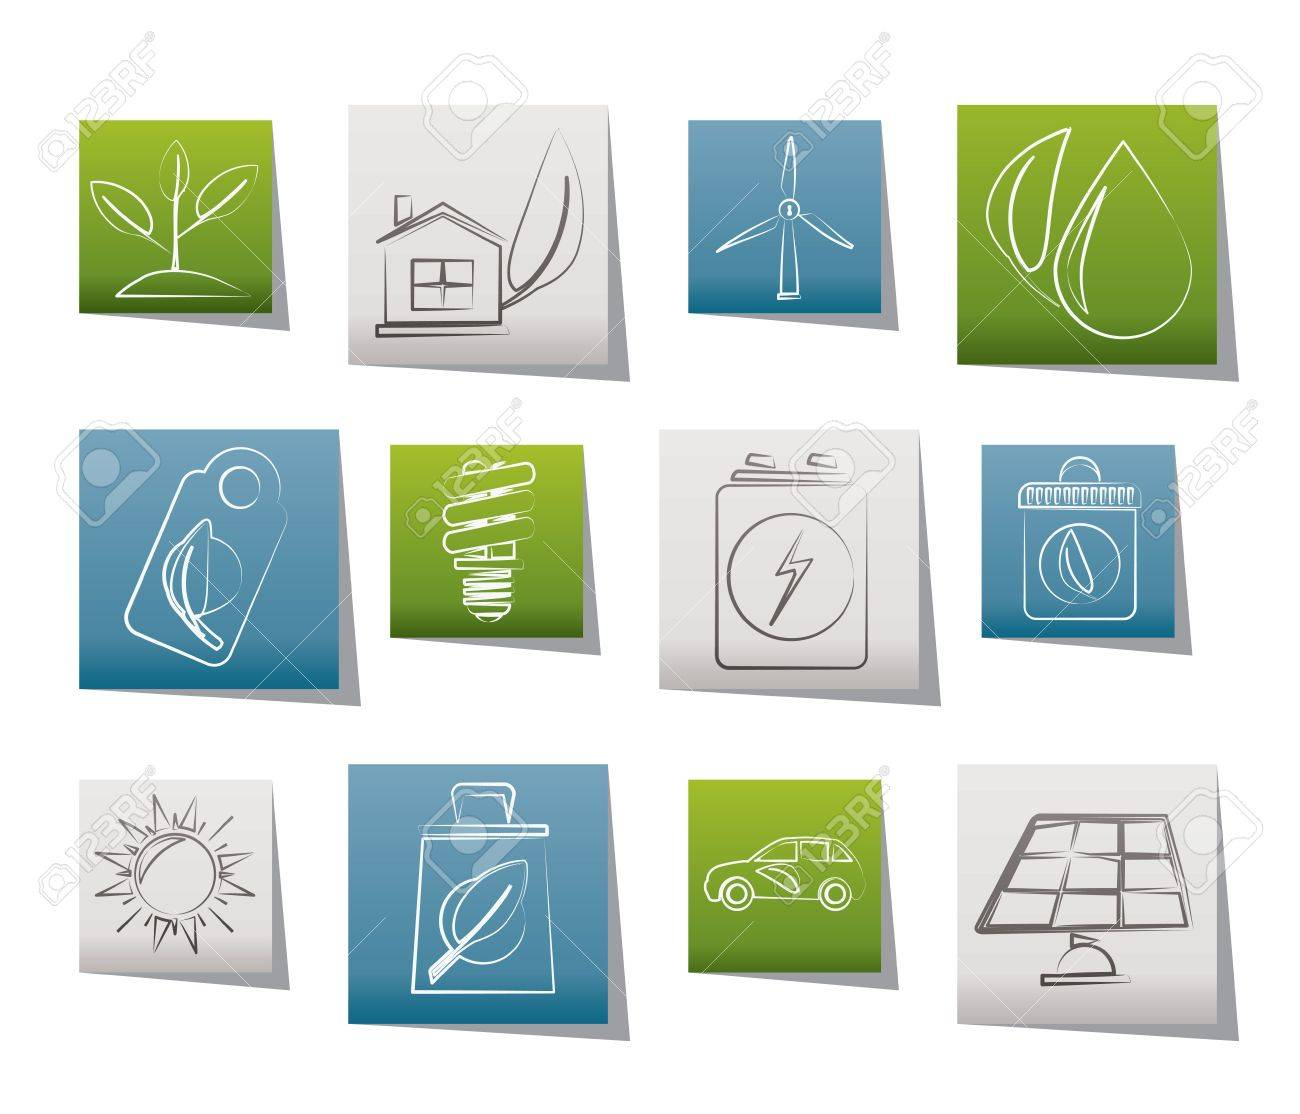 Green and Environment Icons Stock Vector - 11195295